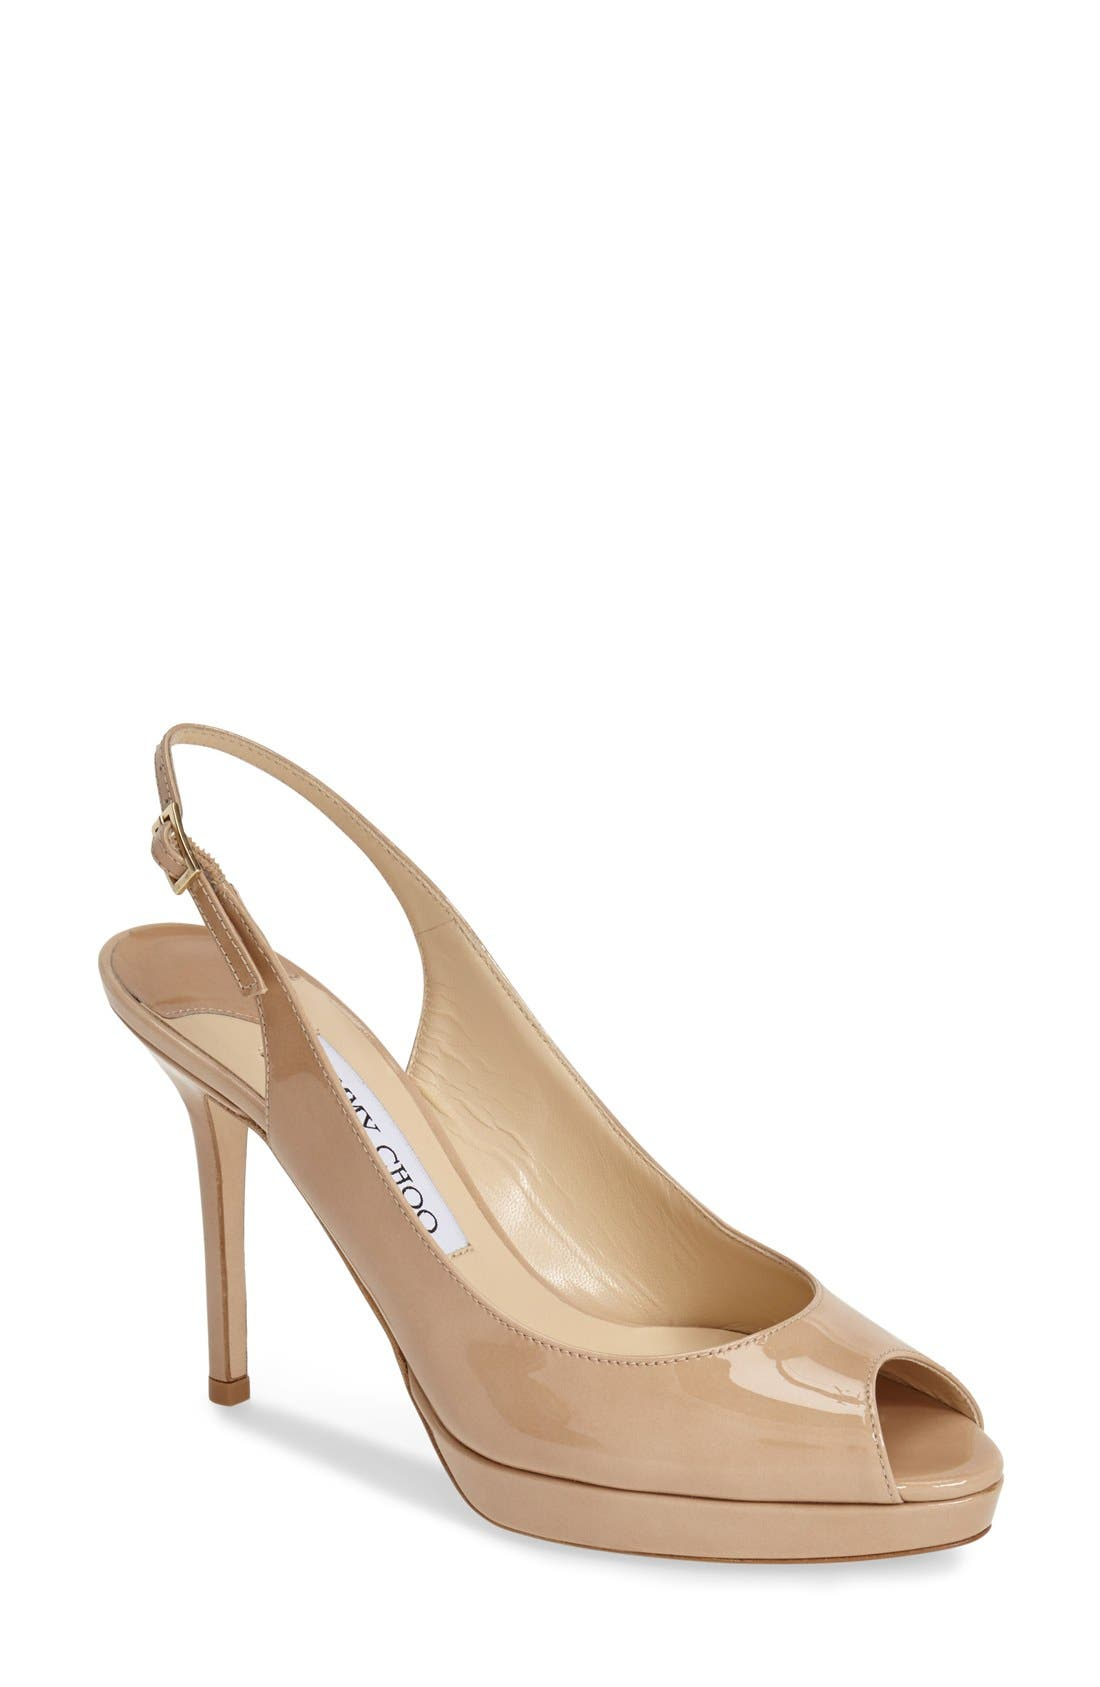 Alternate Image 1 Selected - Jimmy Choo 'Nova' Patent Leather Slingback Pump (Women)